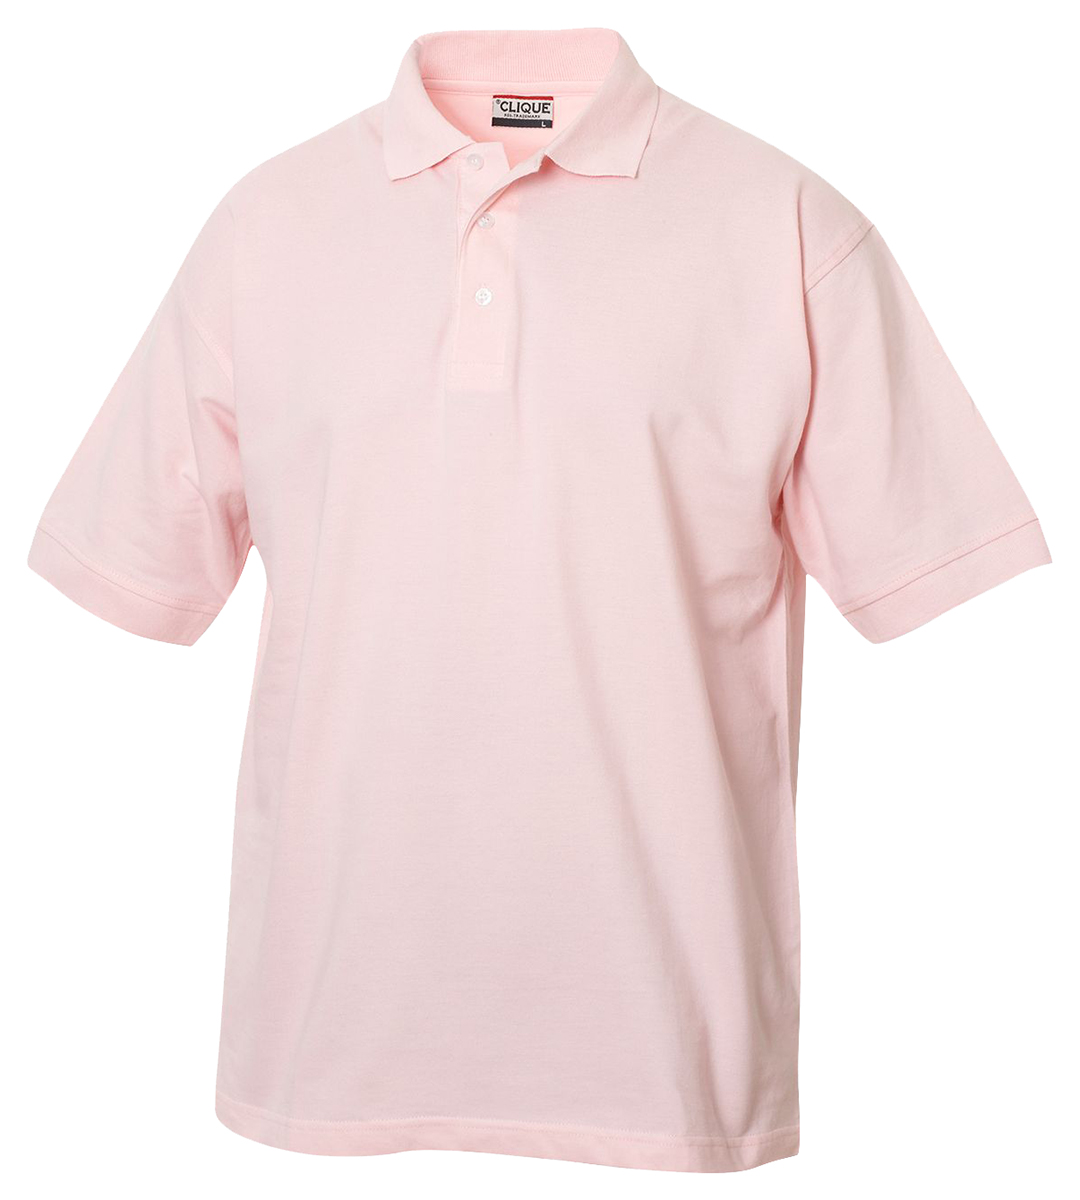 CLIQUE MQK00001 Men's Short Sleeve 3 Front Button Polo Shirt at Sears.com